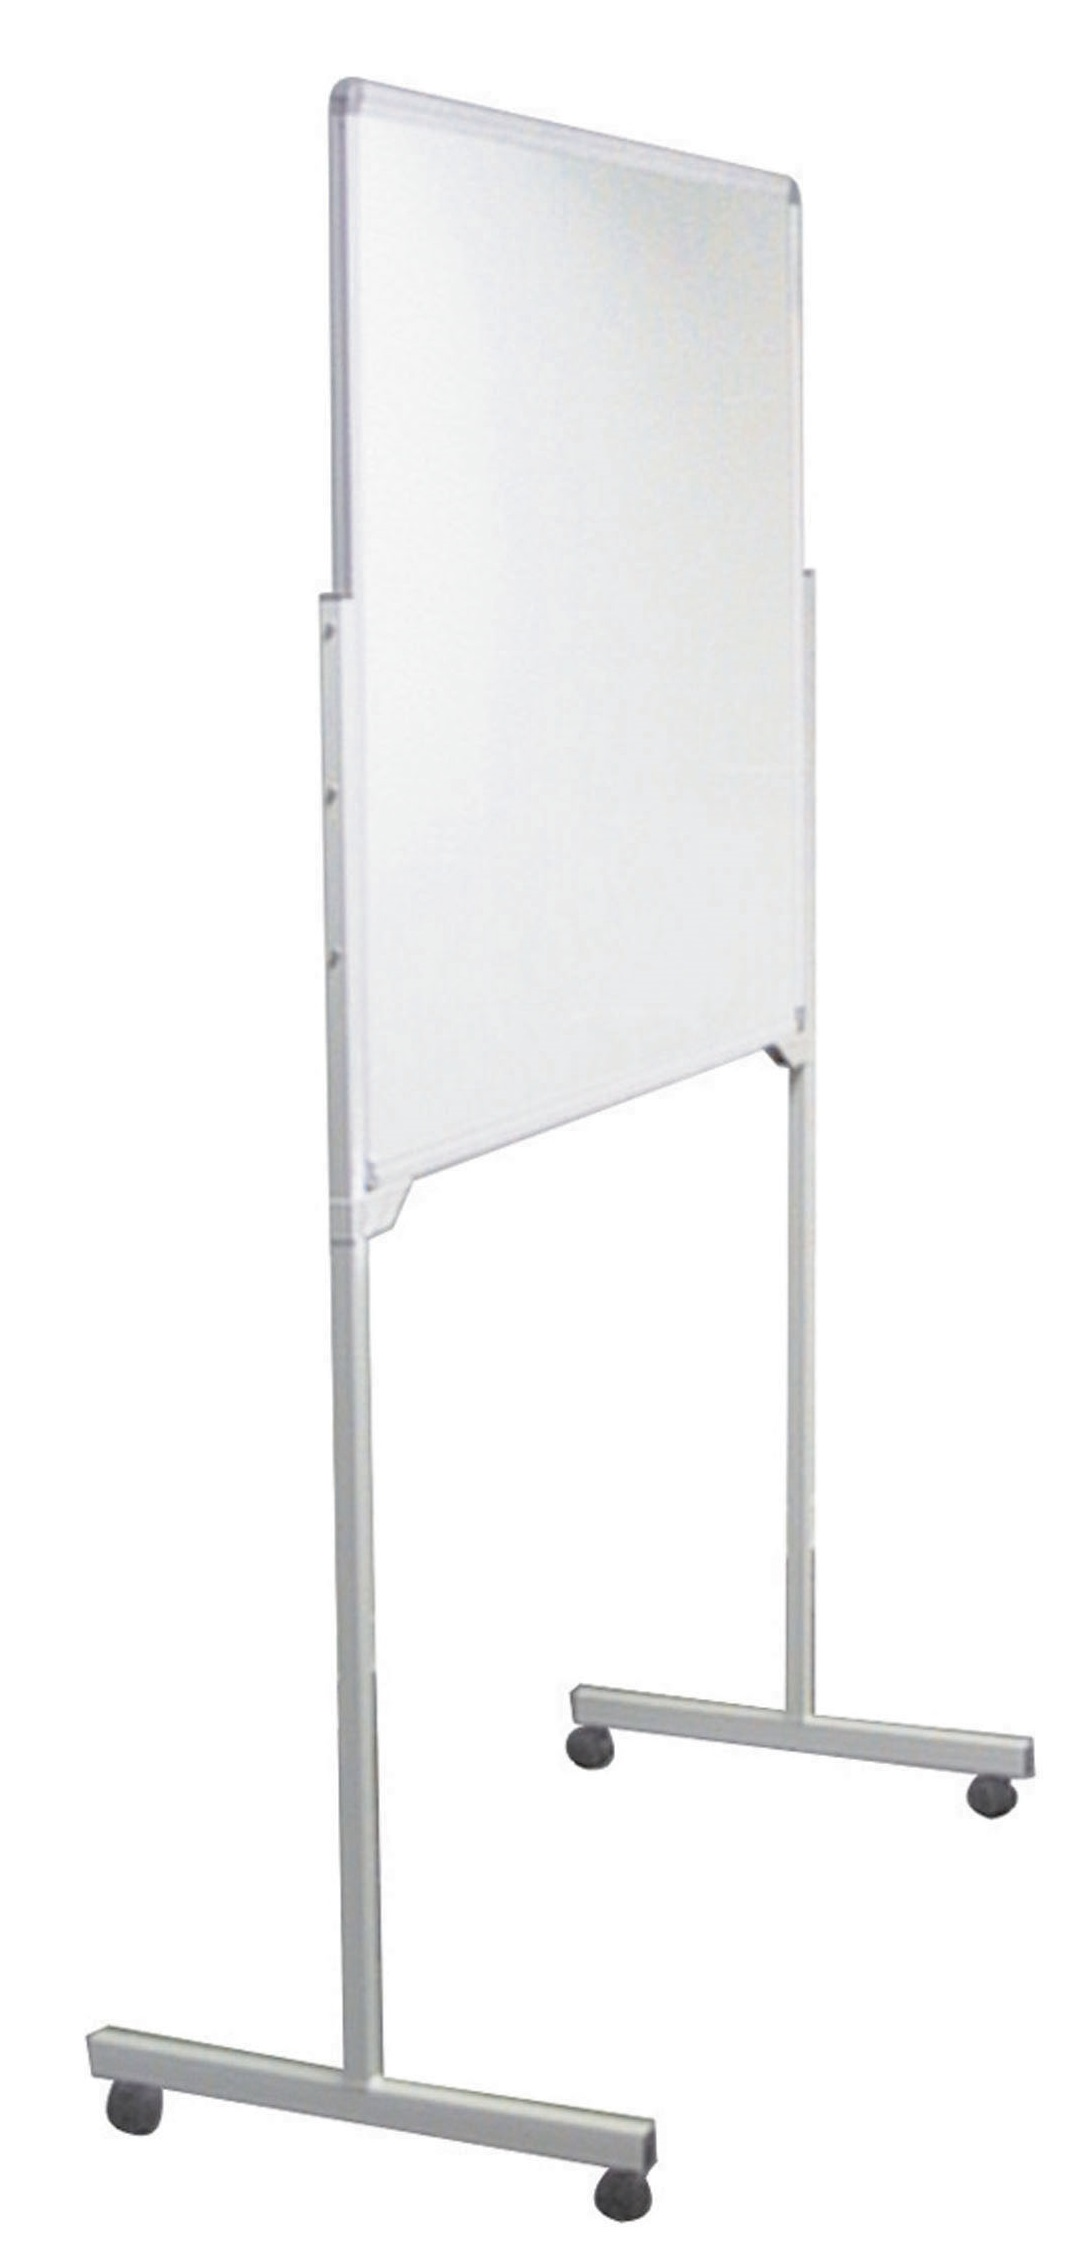 Parrot T-Leg Set 1400mmx600mm For Boards Up To 1500mm